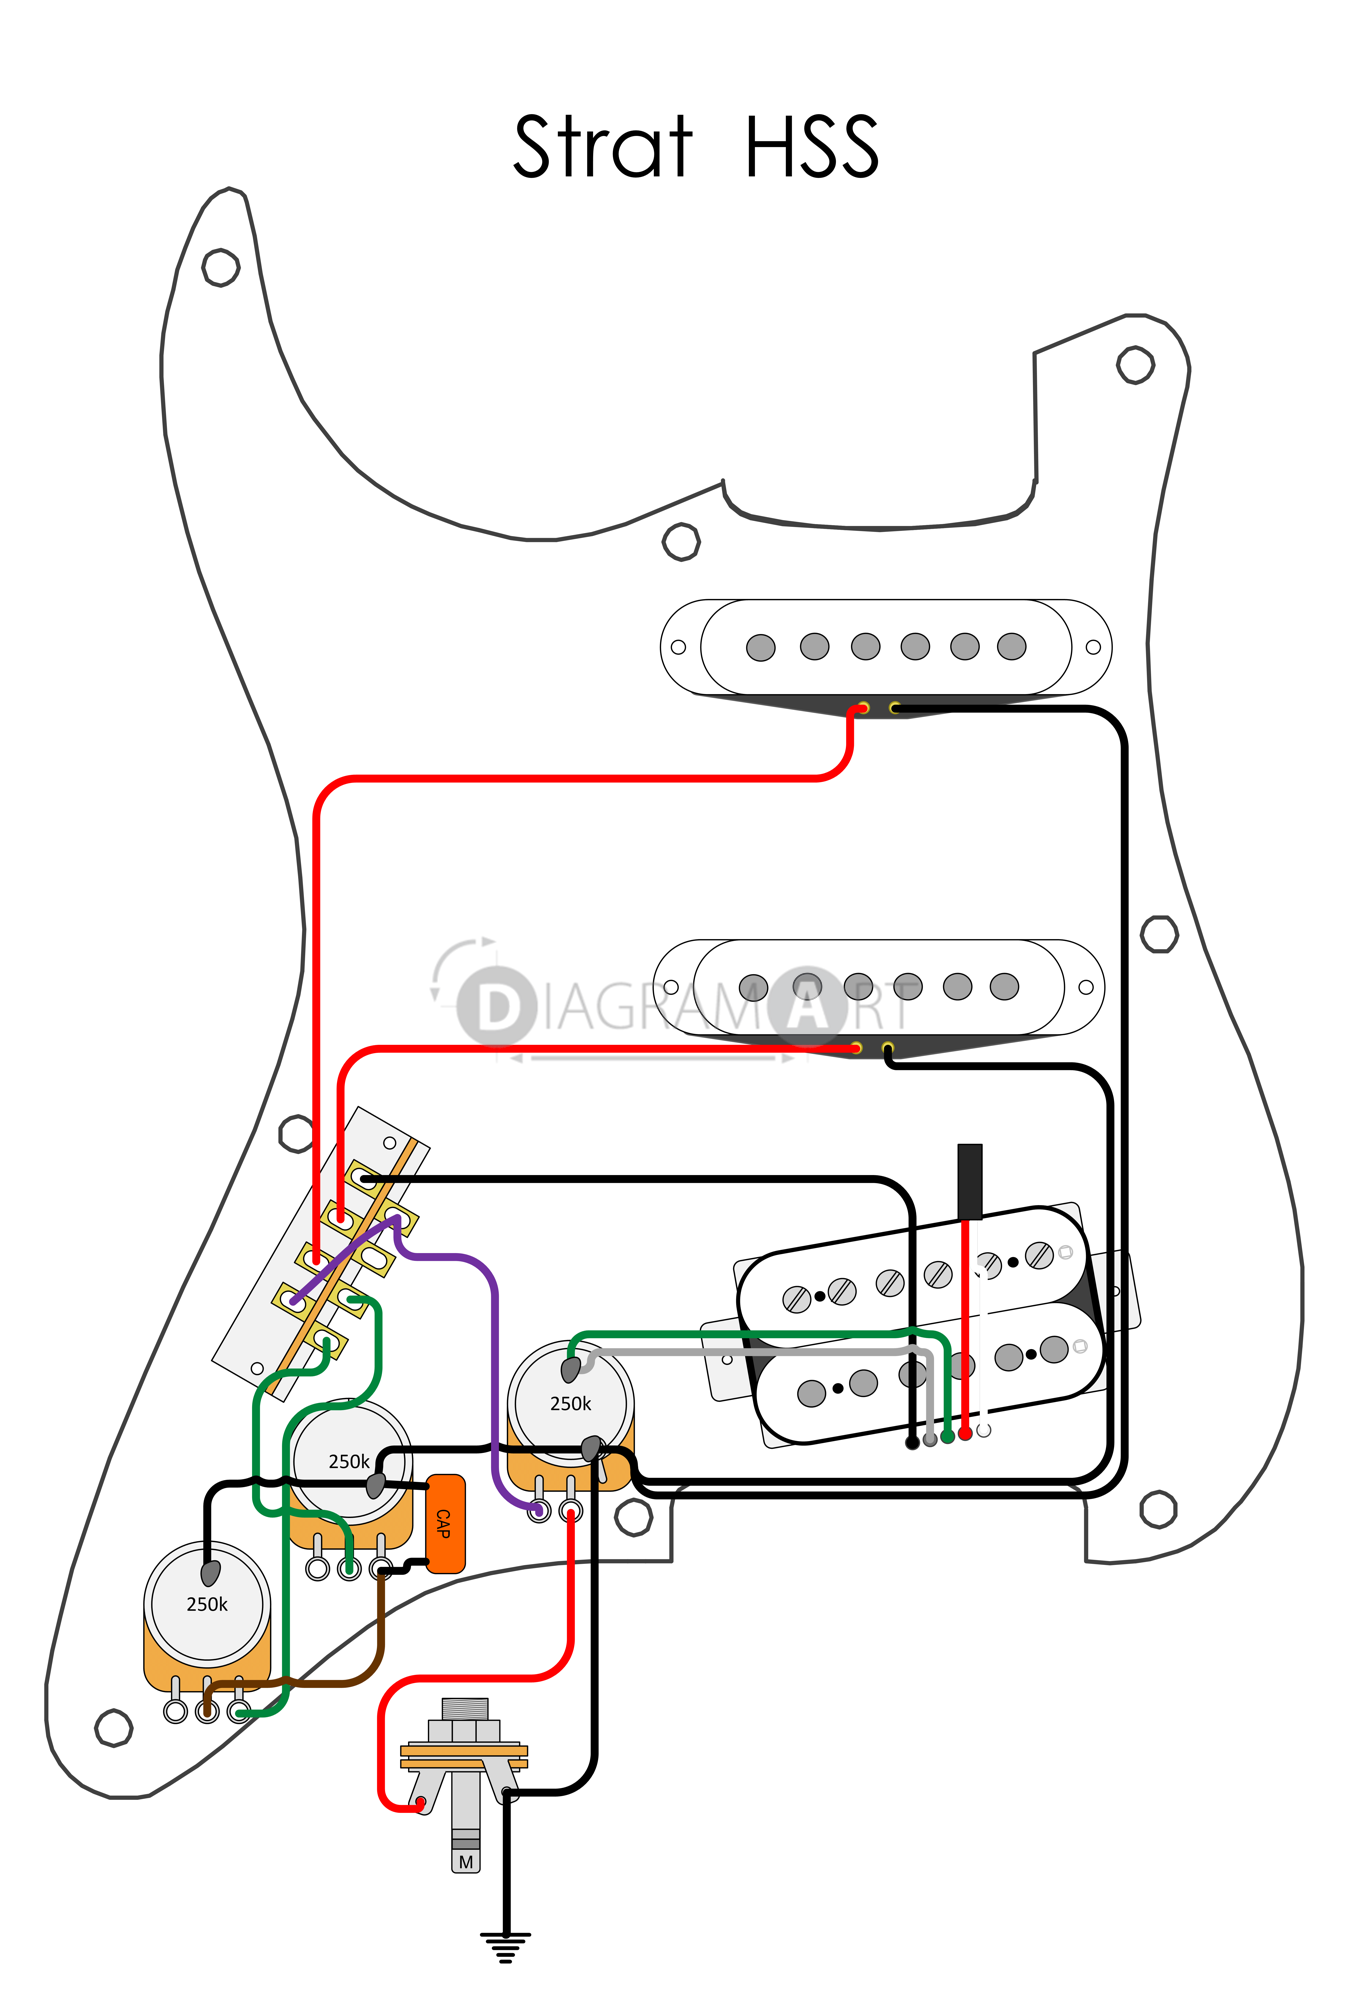 electric guitar wiring strat hss electric circuit diagramart rh diagramart com connect electric guitar to pc wire electric guitar